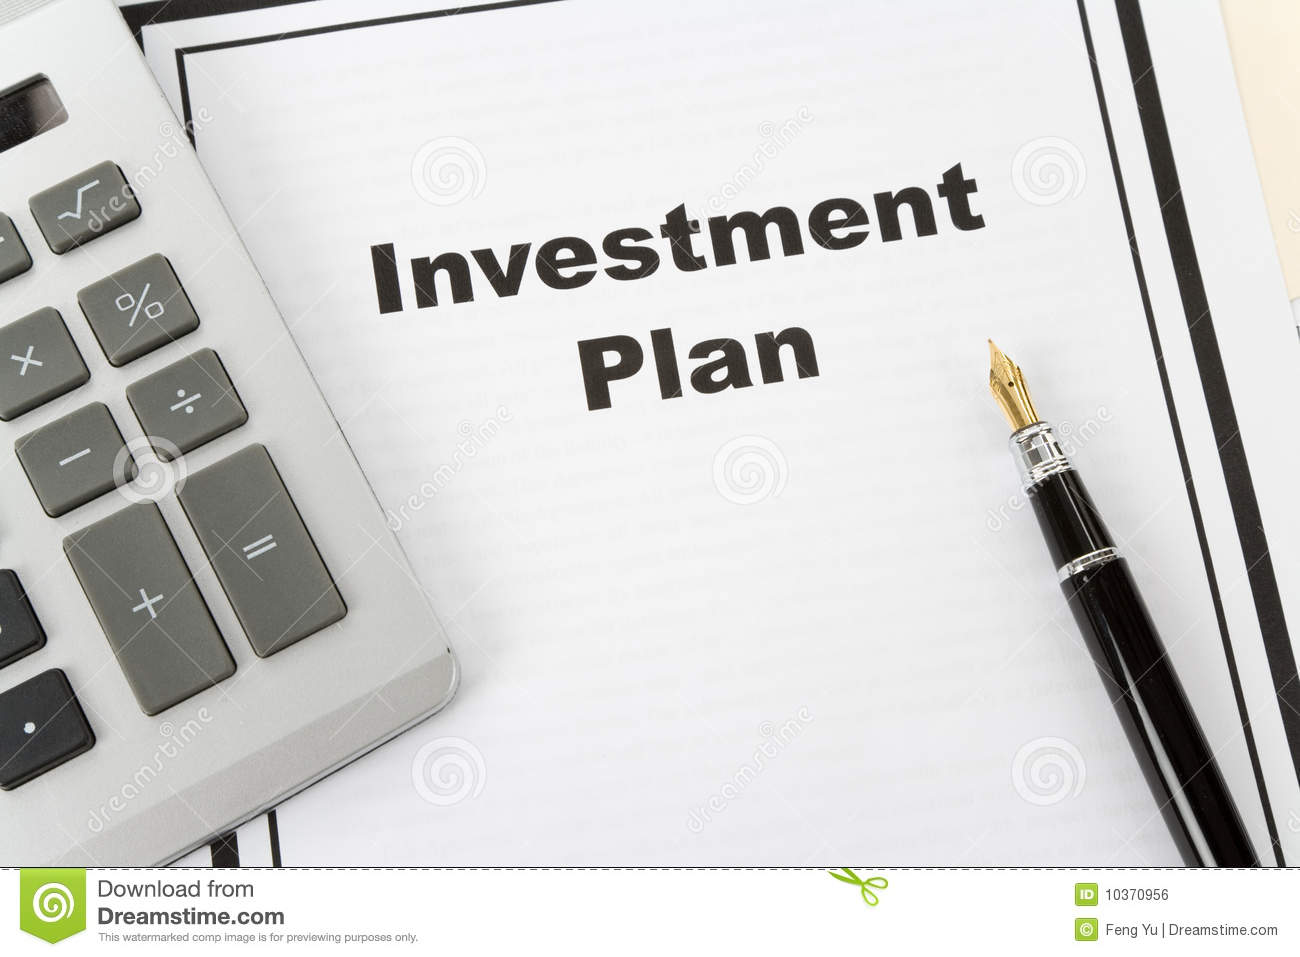 Investment Plan Stock Photo Image Of Document, Investment. Business Intelligence For Small Business. Medicine Manufacturing Companies. Bachelor S Degree In Nutrition. Colleges For Wedding Planners. Information Technology Specialist. Male Stress Urinary Incontinence. Best Online Credit Card Solar Energy Solution. Sore Throat And Cough For A Week